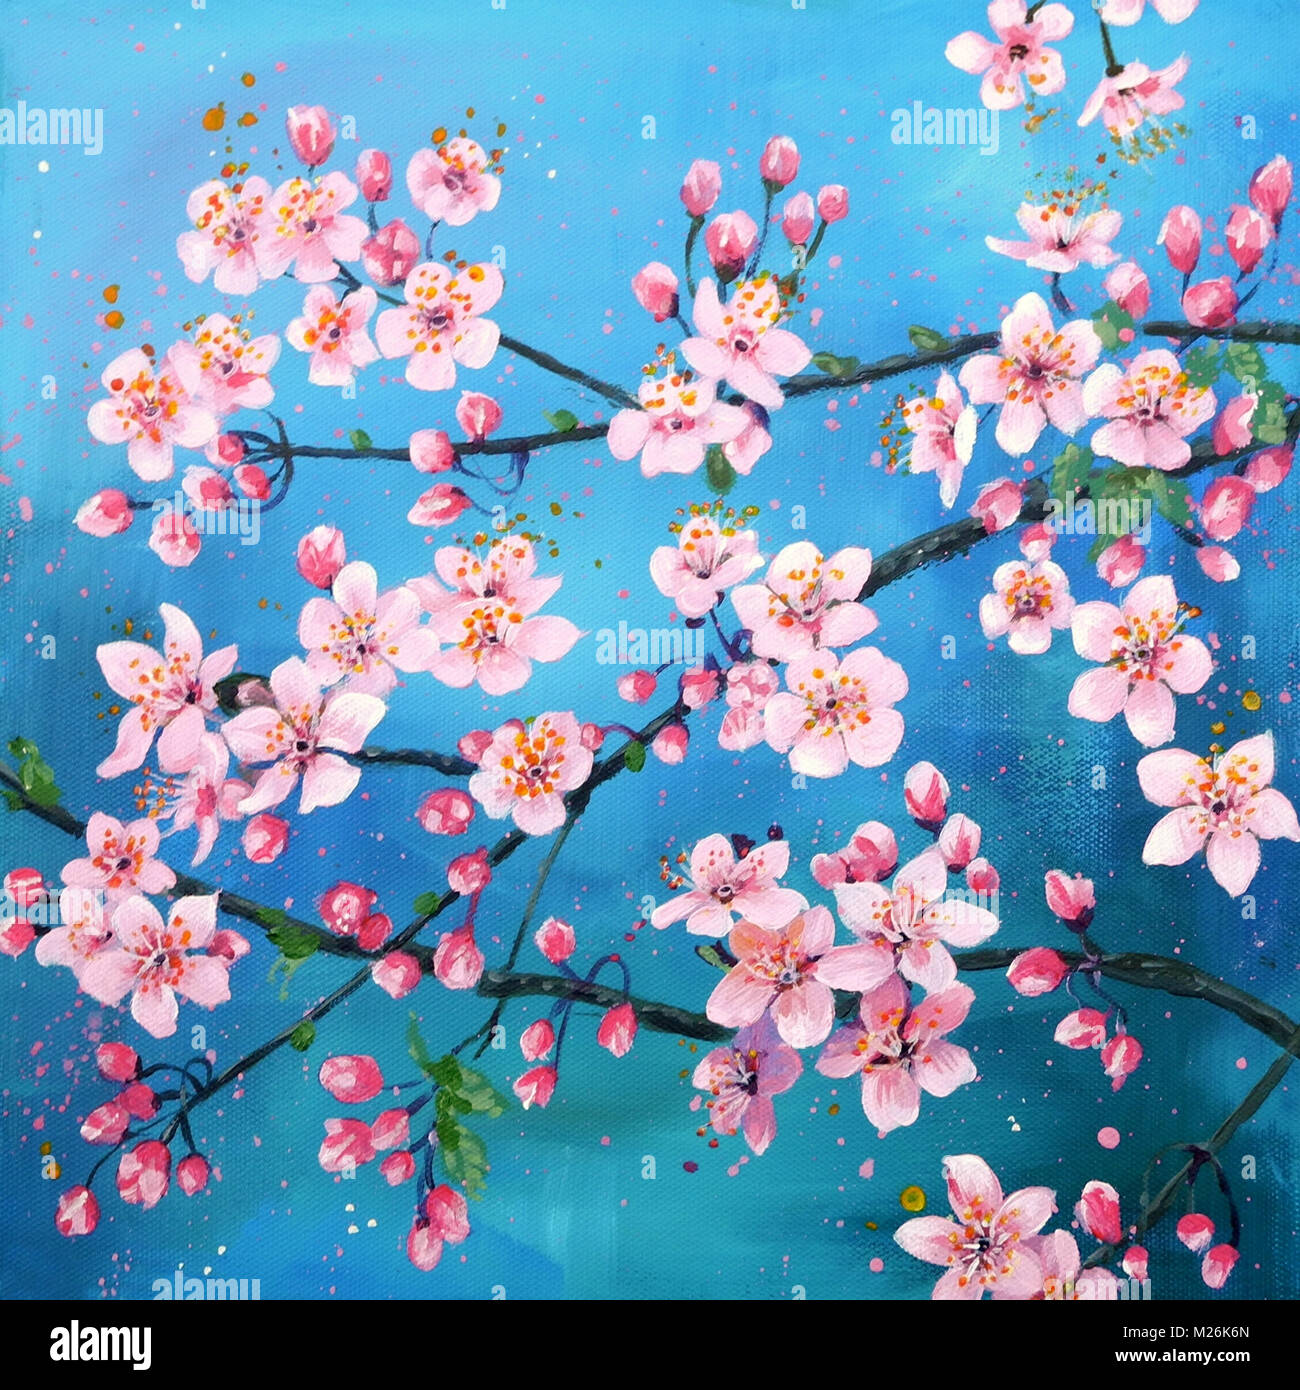 Painting Of Blossoms On A Tree Branch Stock Photo Alamy